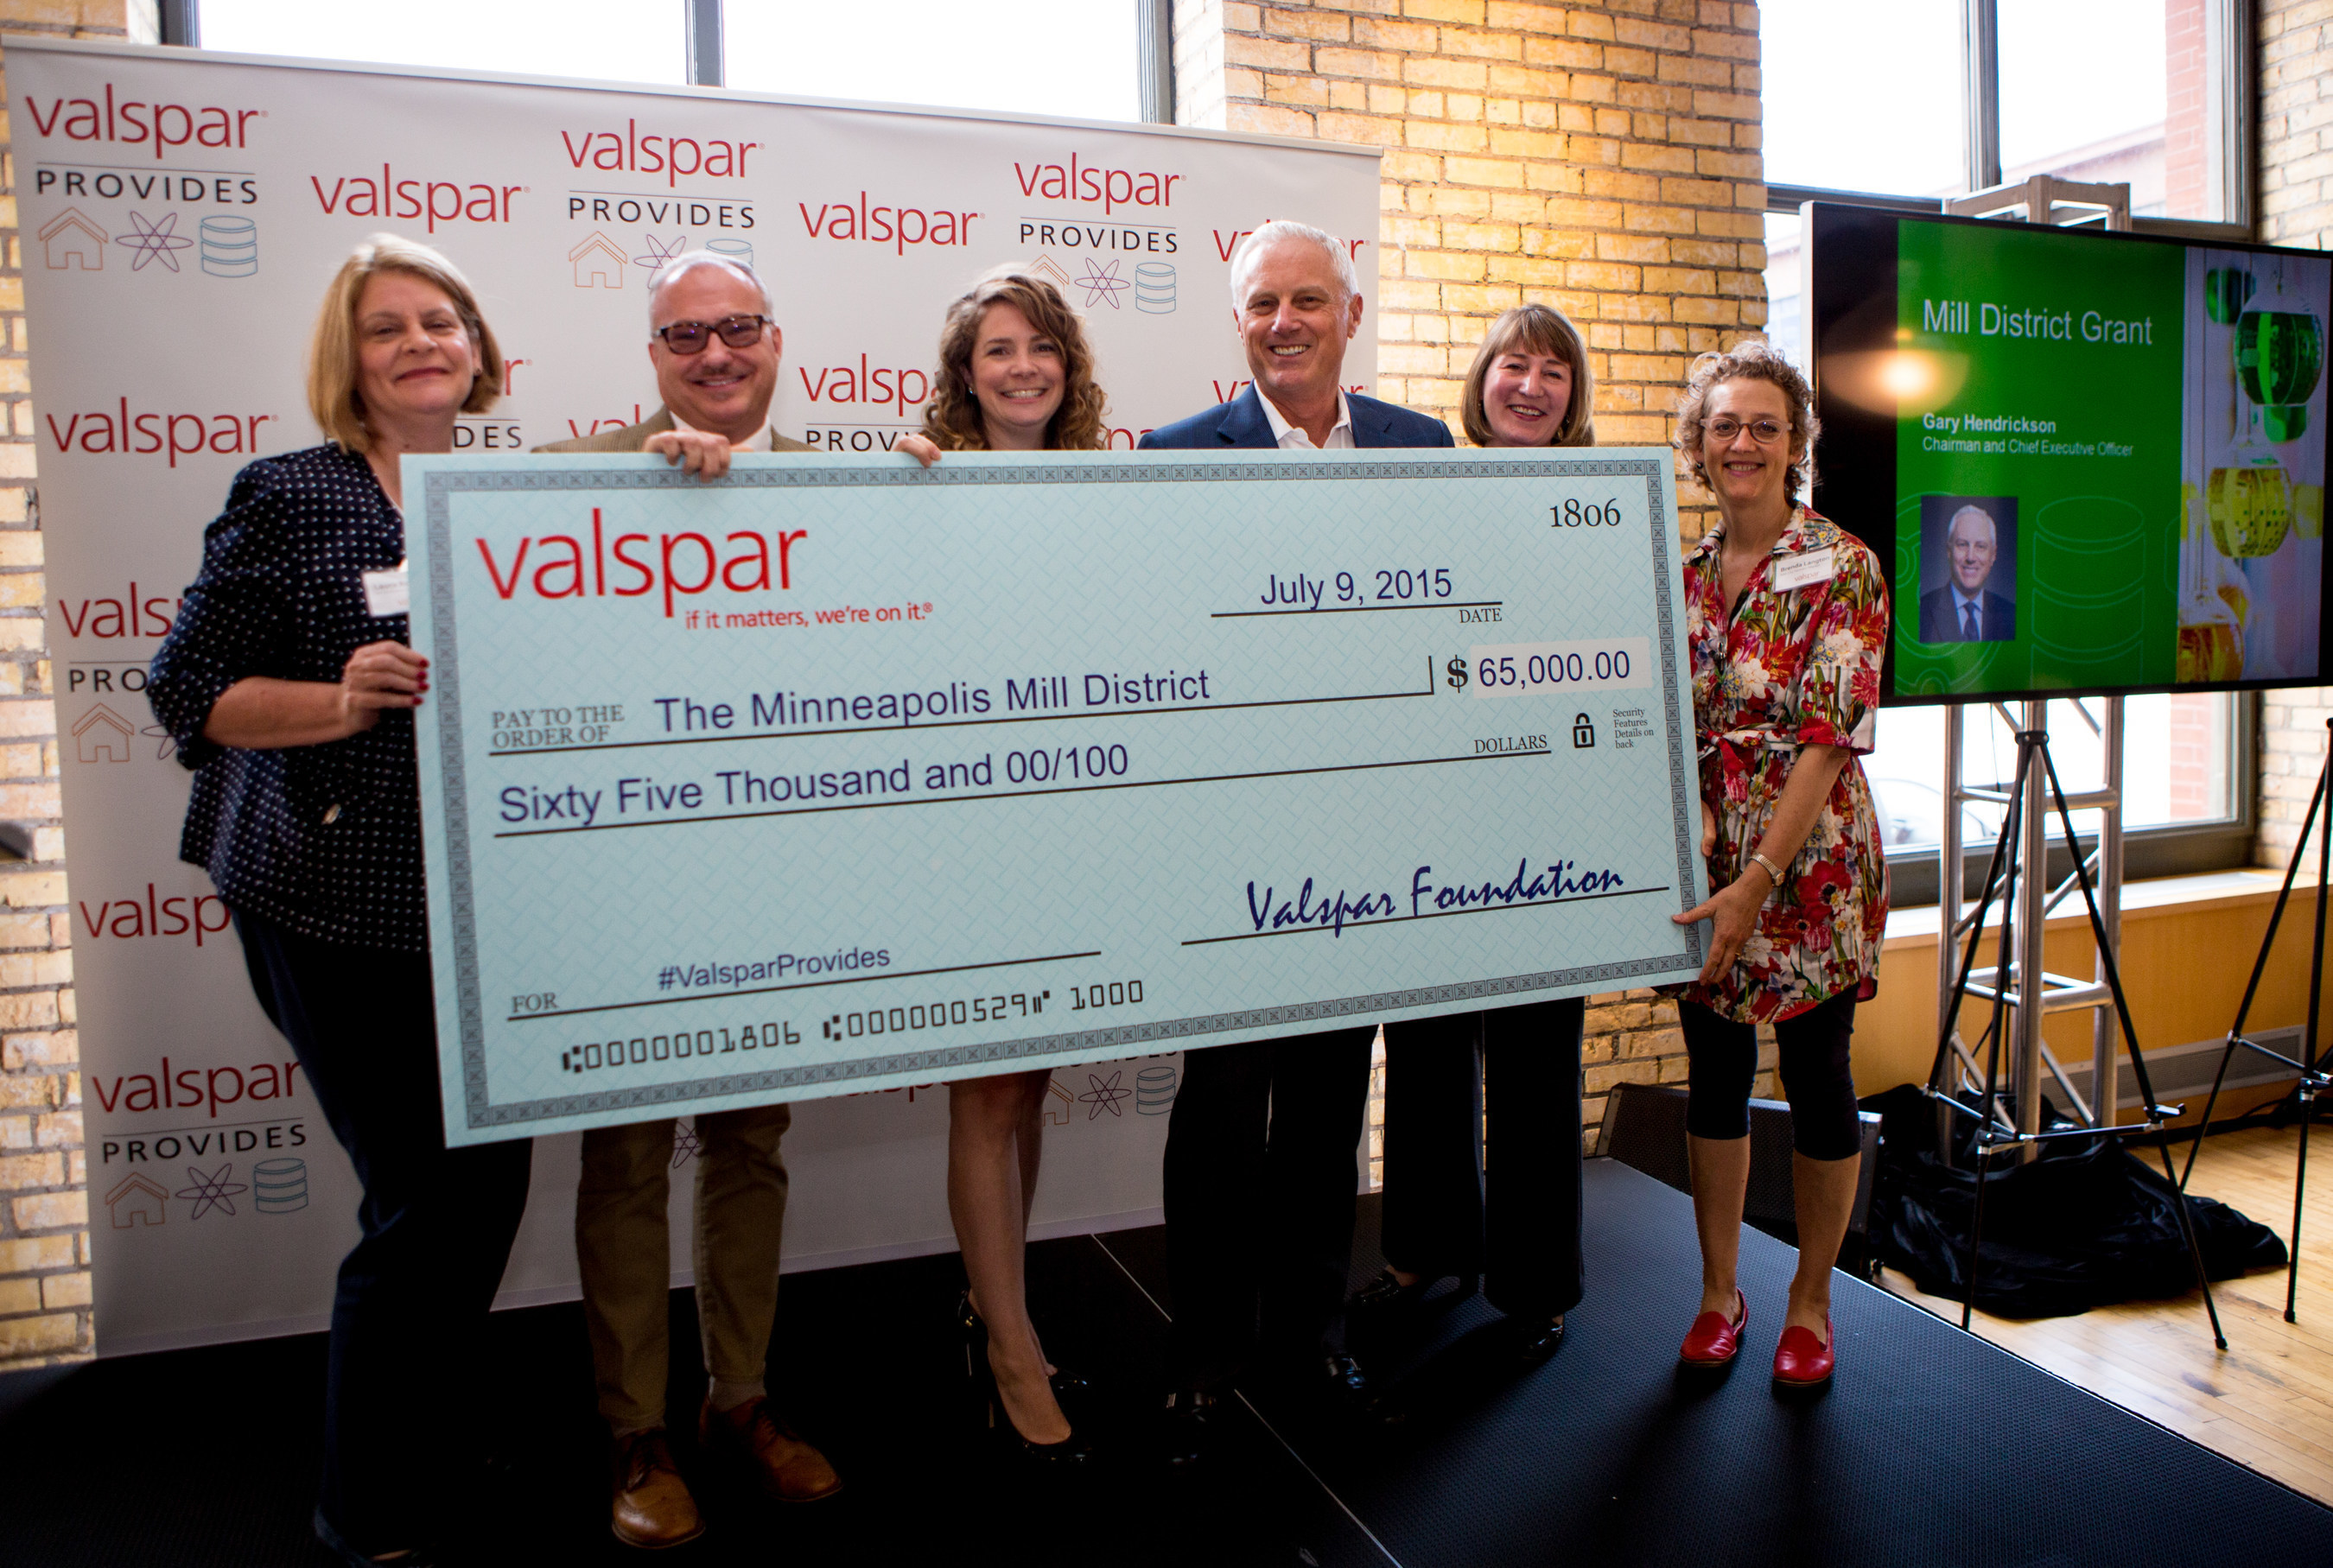 """To commemorate the return of Valspar Corporation's headquarters to the historic Mill District area in Minneapolis, the Valspar Foundation announced $65,000 in grants to five non-profit organizations. Pictured with Valspar Chairman and CEO Gary Hendrickson (third from right) are (l-r) Laura Roller of Mill City Museum, Jeff Rathermel of Minnesota Center for Book Arts, Emily Dehn of The Guthrie Theater, Gary Hendrickson, Valspar, Jennifer Halcrow of MacPhail Center for Music, and Brenda Langton, founder of the Mill City Farmers Market. """"As Minneapolis is Valspar's global headquarters community, we are pleased to support the Mill District neighborhood,"""" said Gary Hendrickson."""